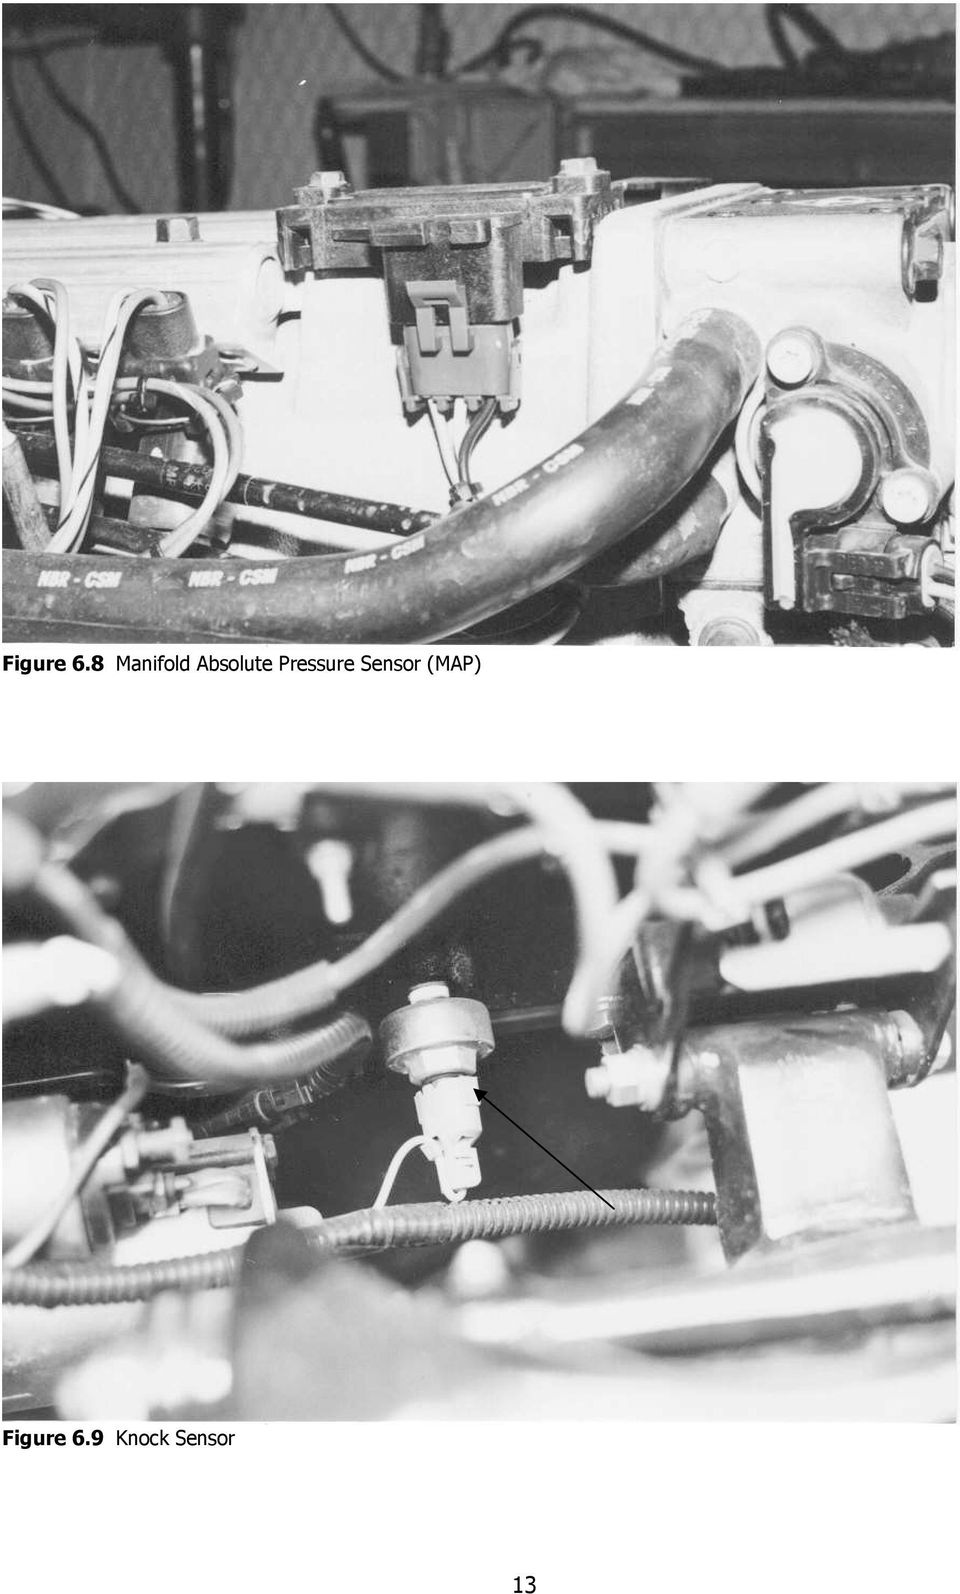 Wire Harness Installation Instructions Pdf 1999 Montero Sport Fuse Box 17 Figure 610 Oxygen Sensor Aldl Fuel Pump Relay Block 611 Connector And 14